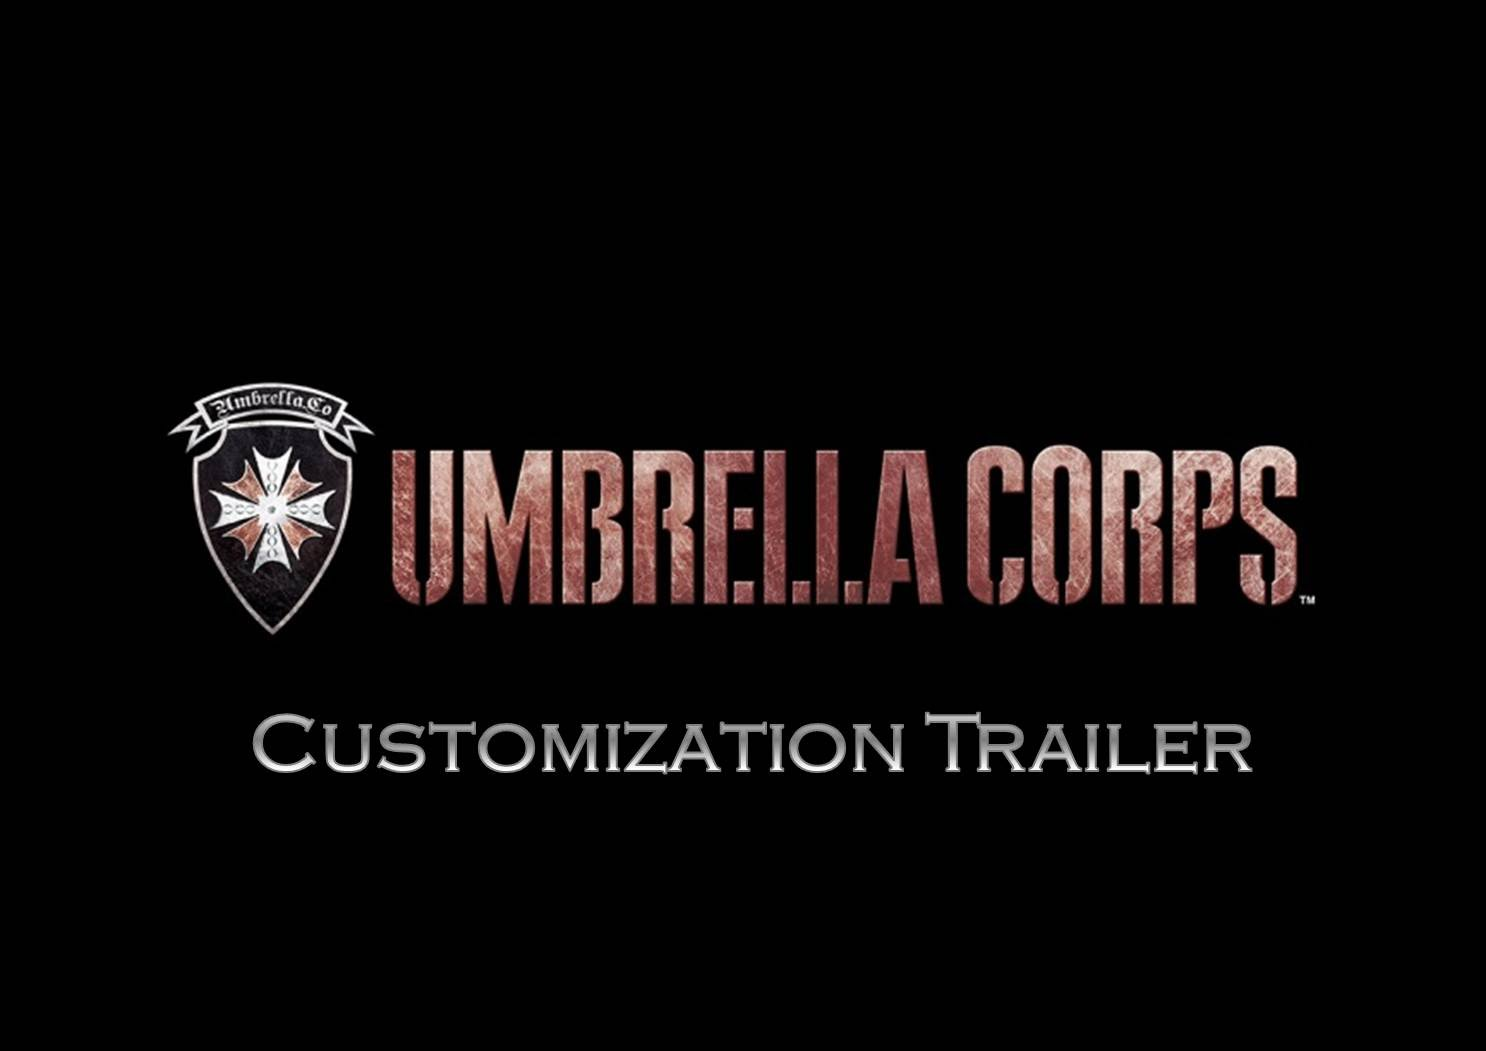 UMBRELLA CORPS - Customization Trailer